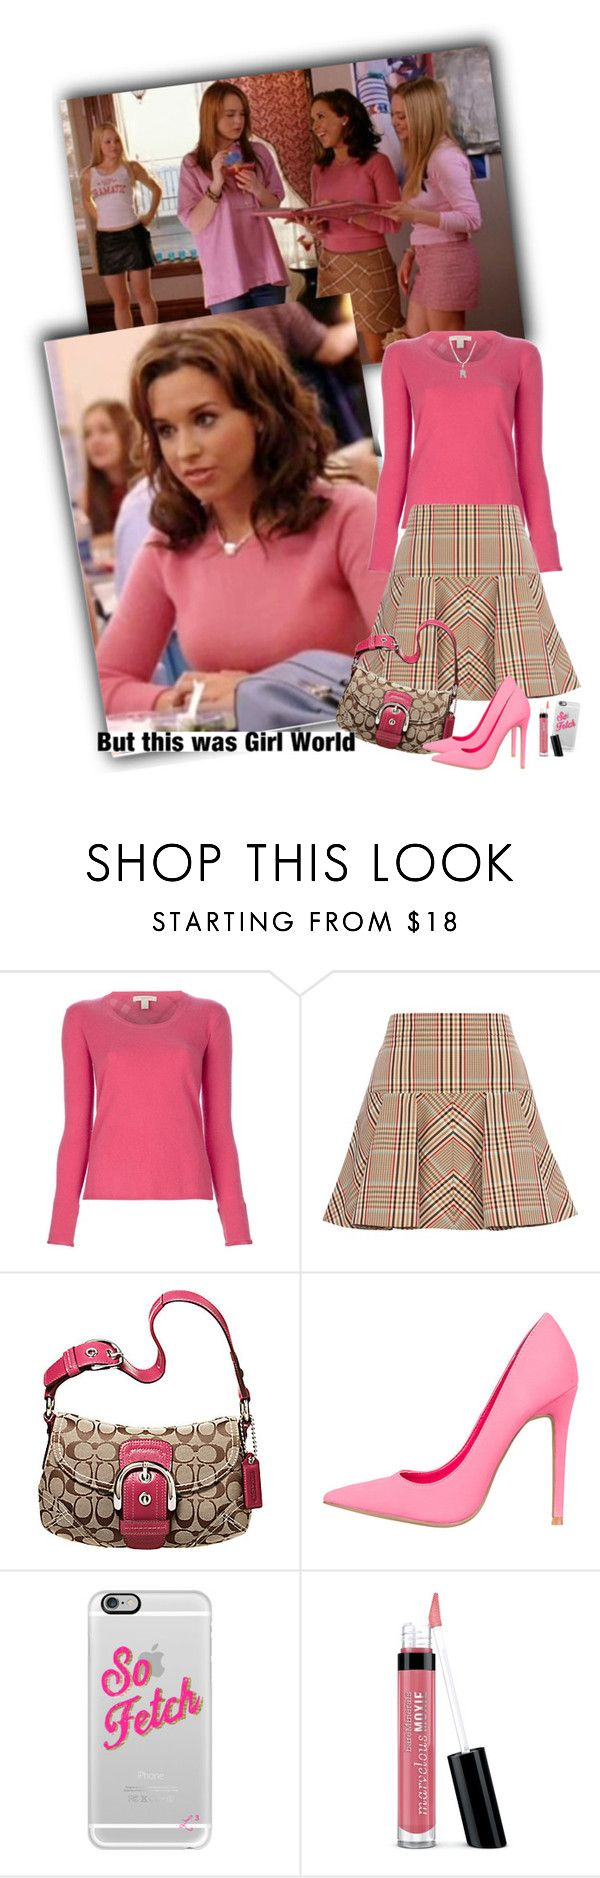 """Gretchen Weiners Mean Girls"" by priscilla12 ❤ liked on Polyvore featuring Burberry, Coach, Casetify, Bare Escentuals, movie, meangirls, sofetch, YouGoGlennCoCo and gretchenweiners"